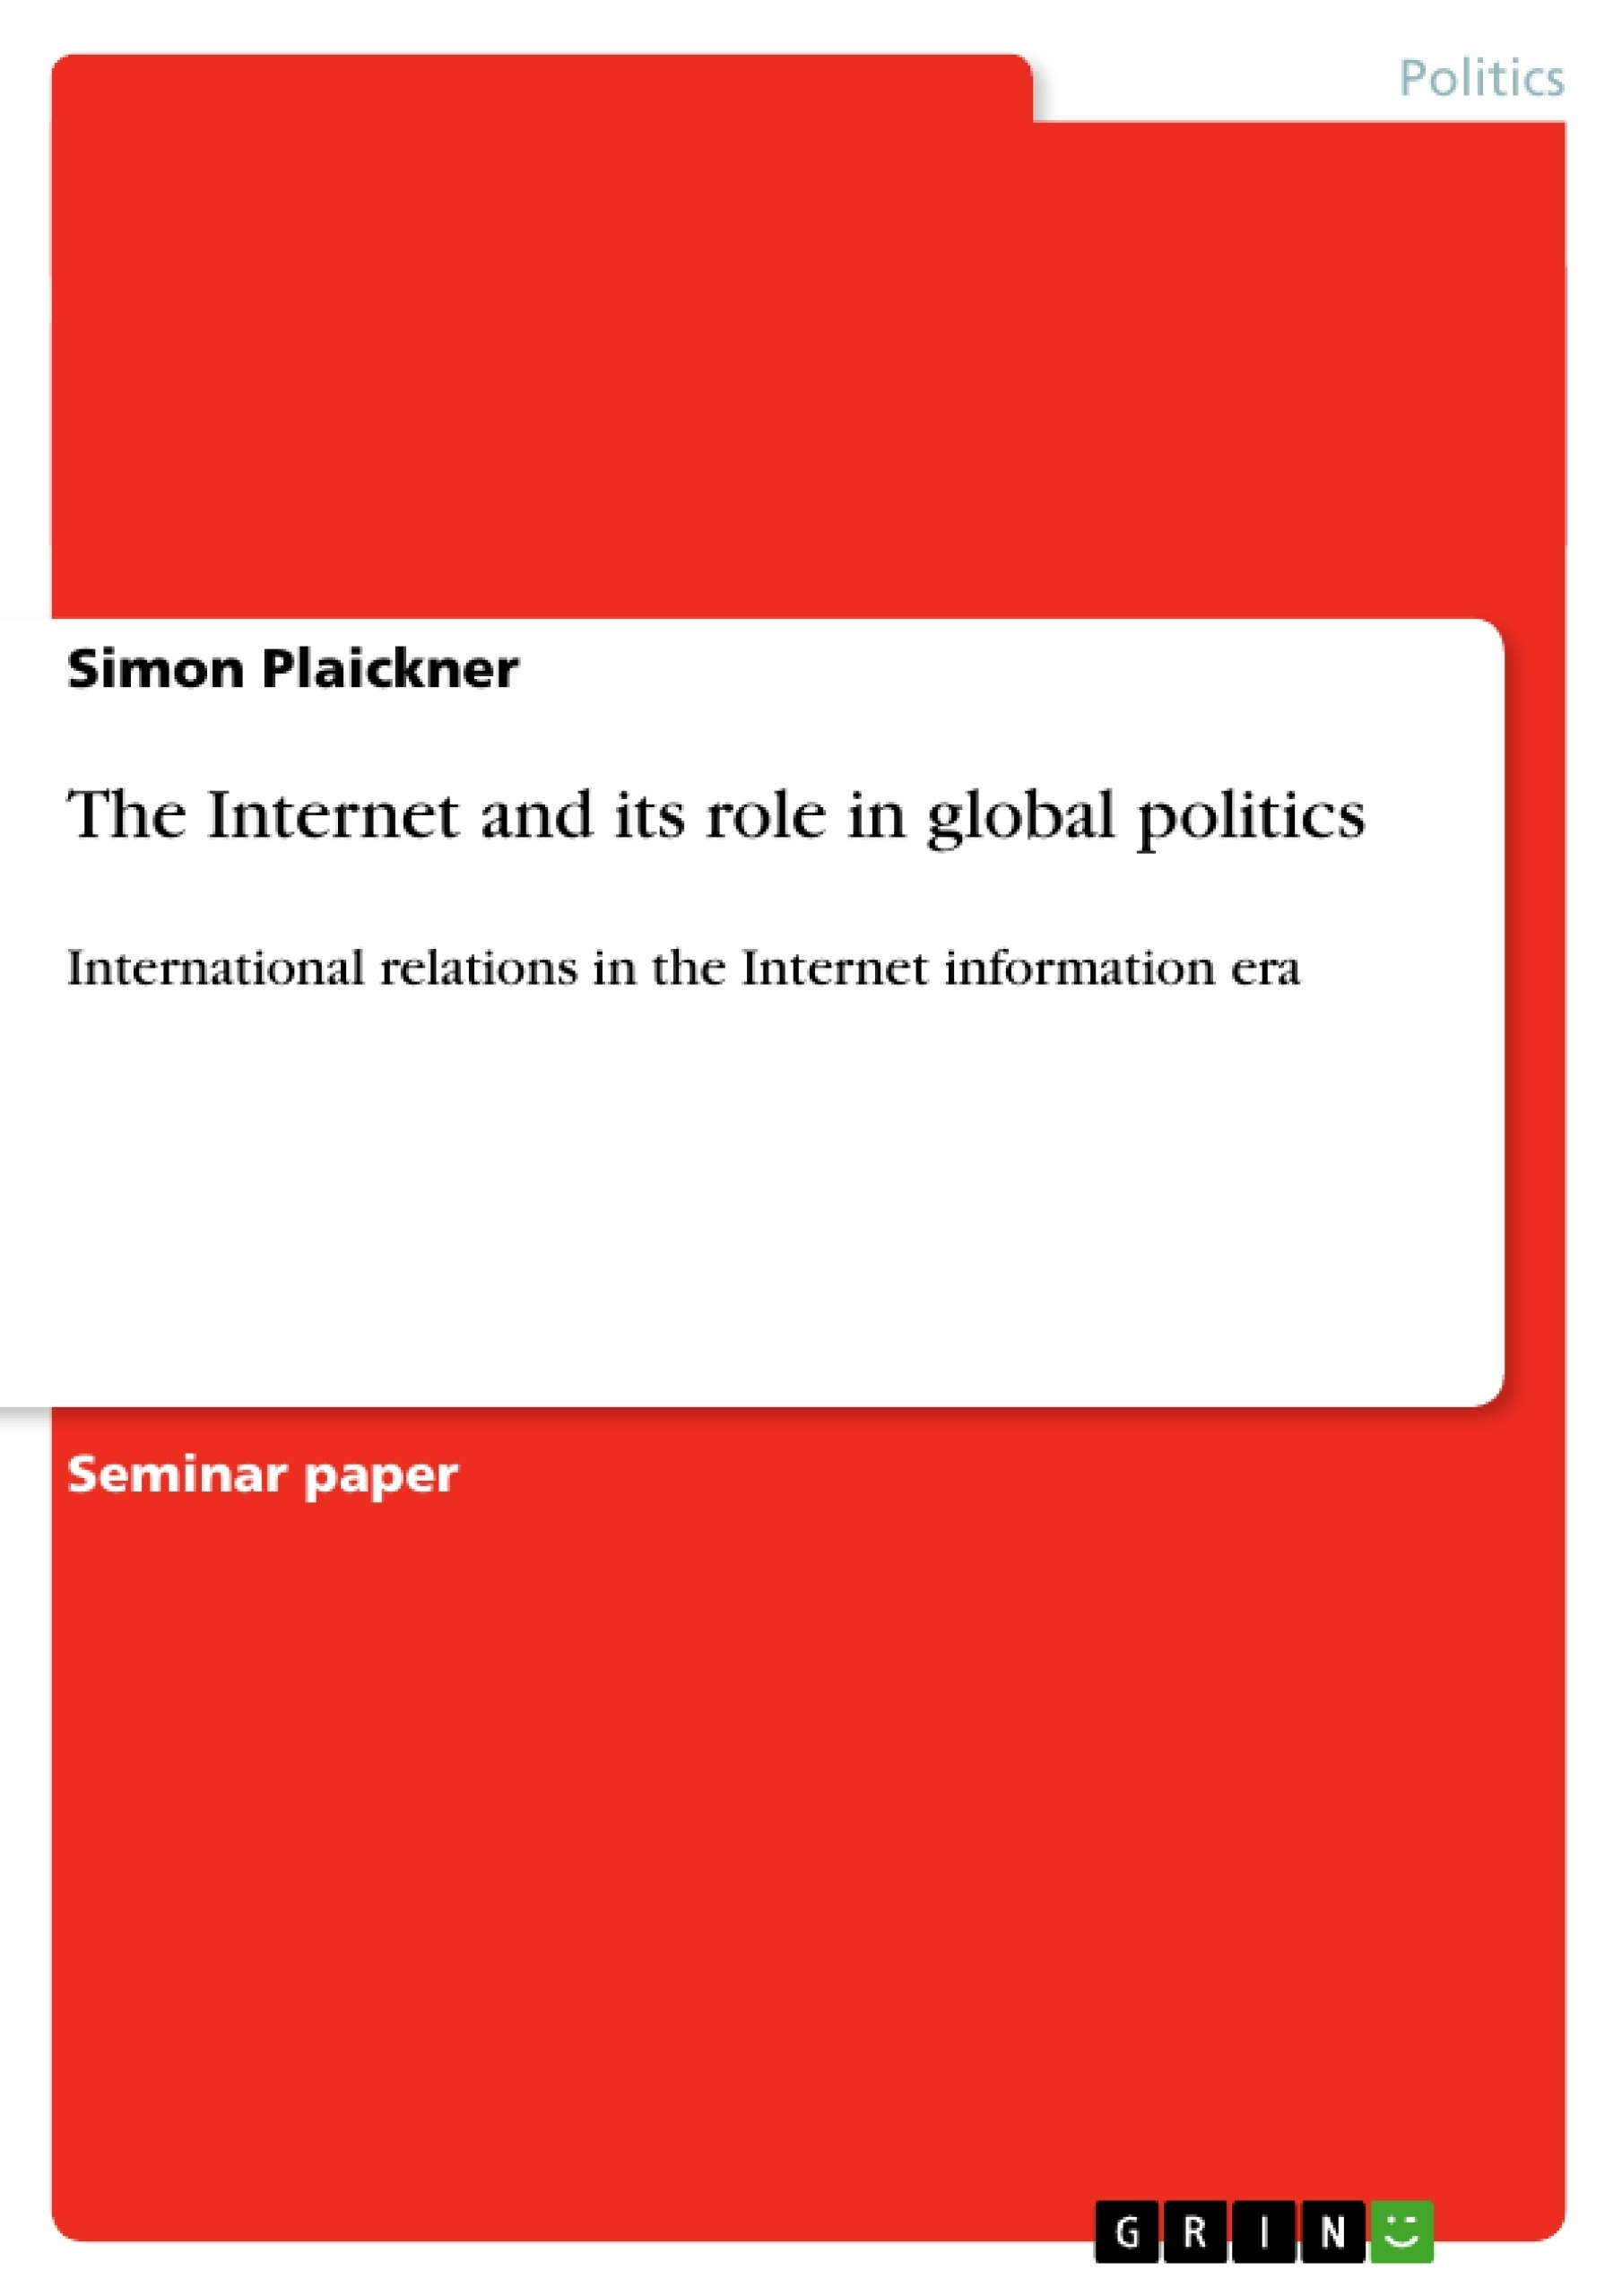 Title: The Internet and its role in global politics